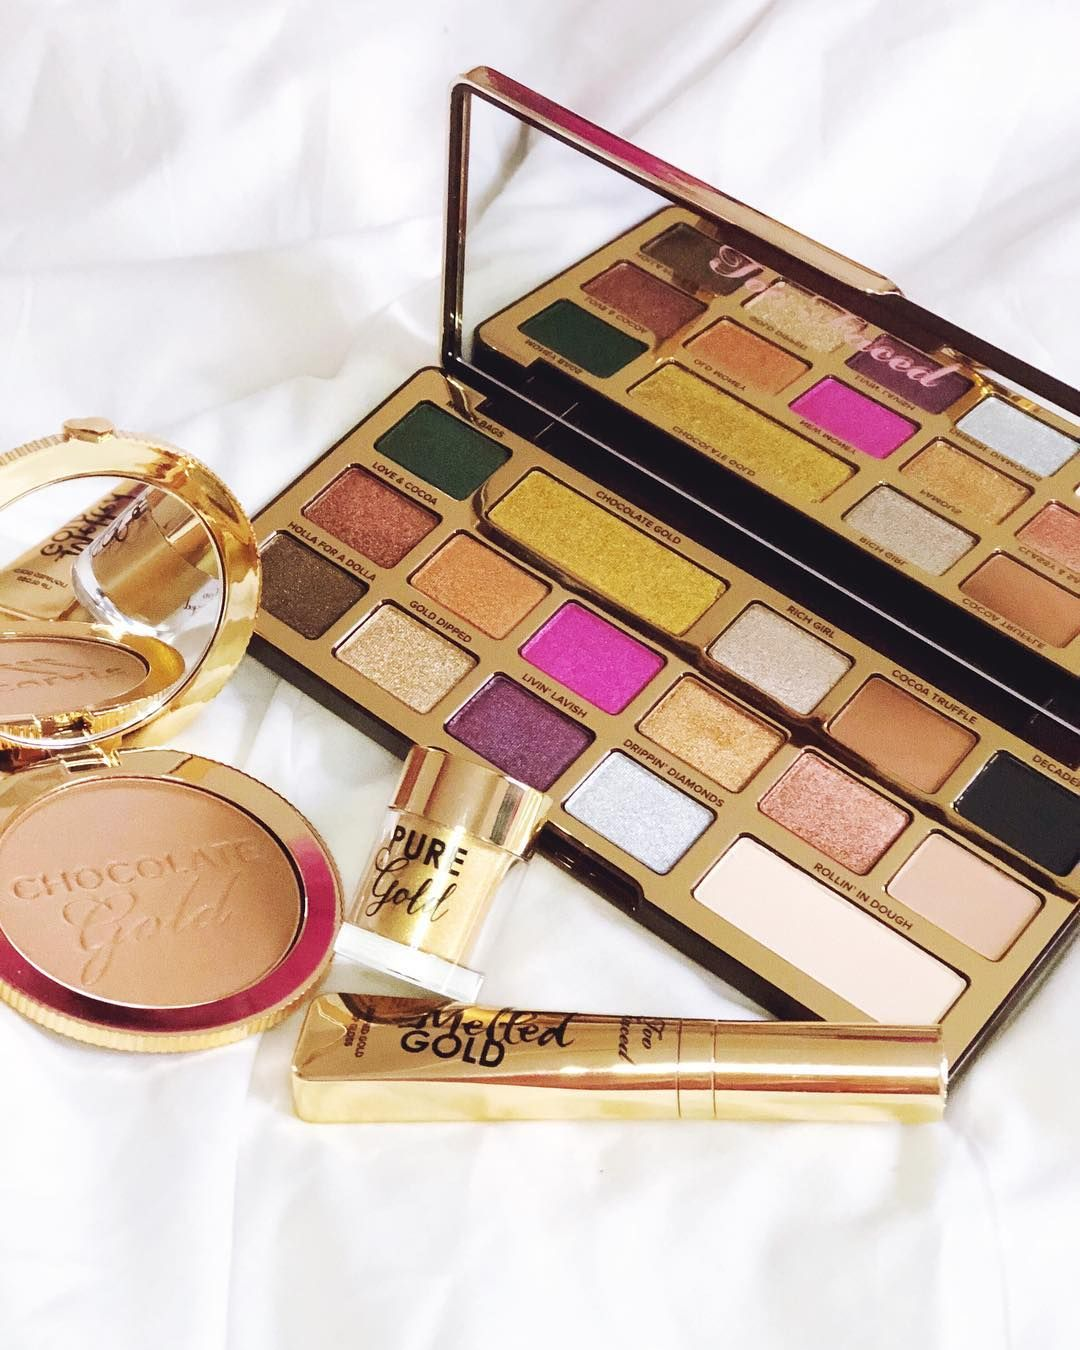 Favorite palette at the moment Chocolate Gold by TooFaced